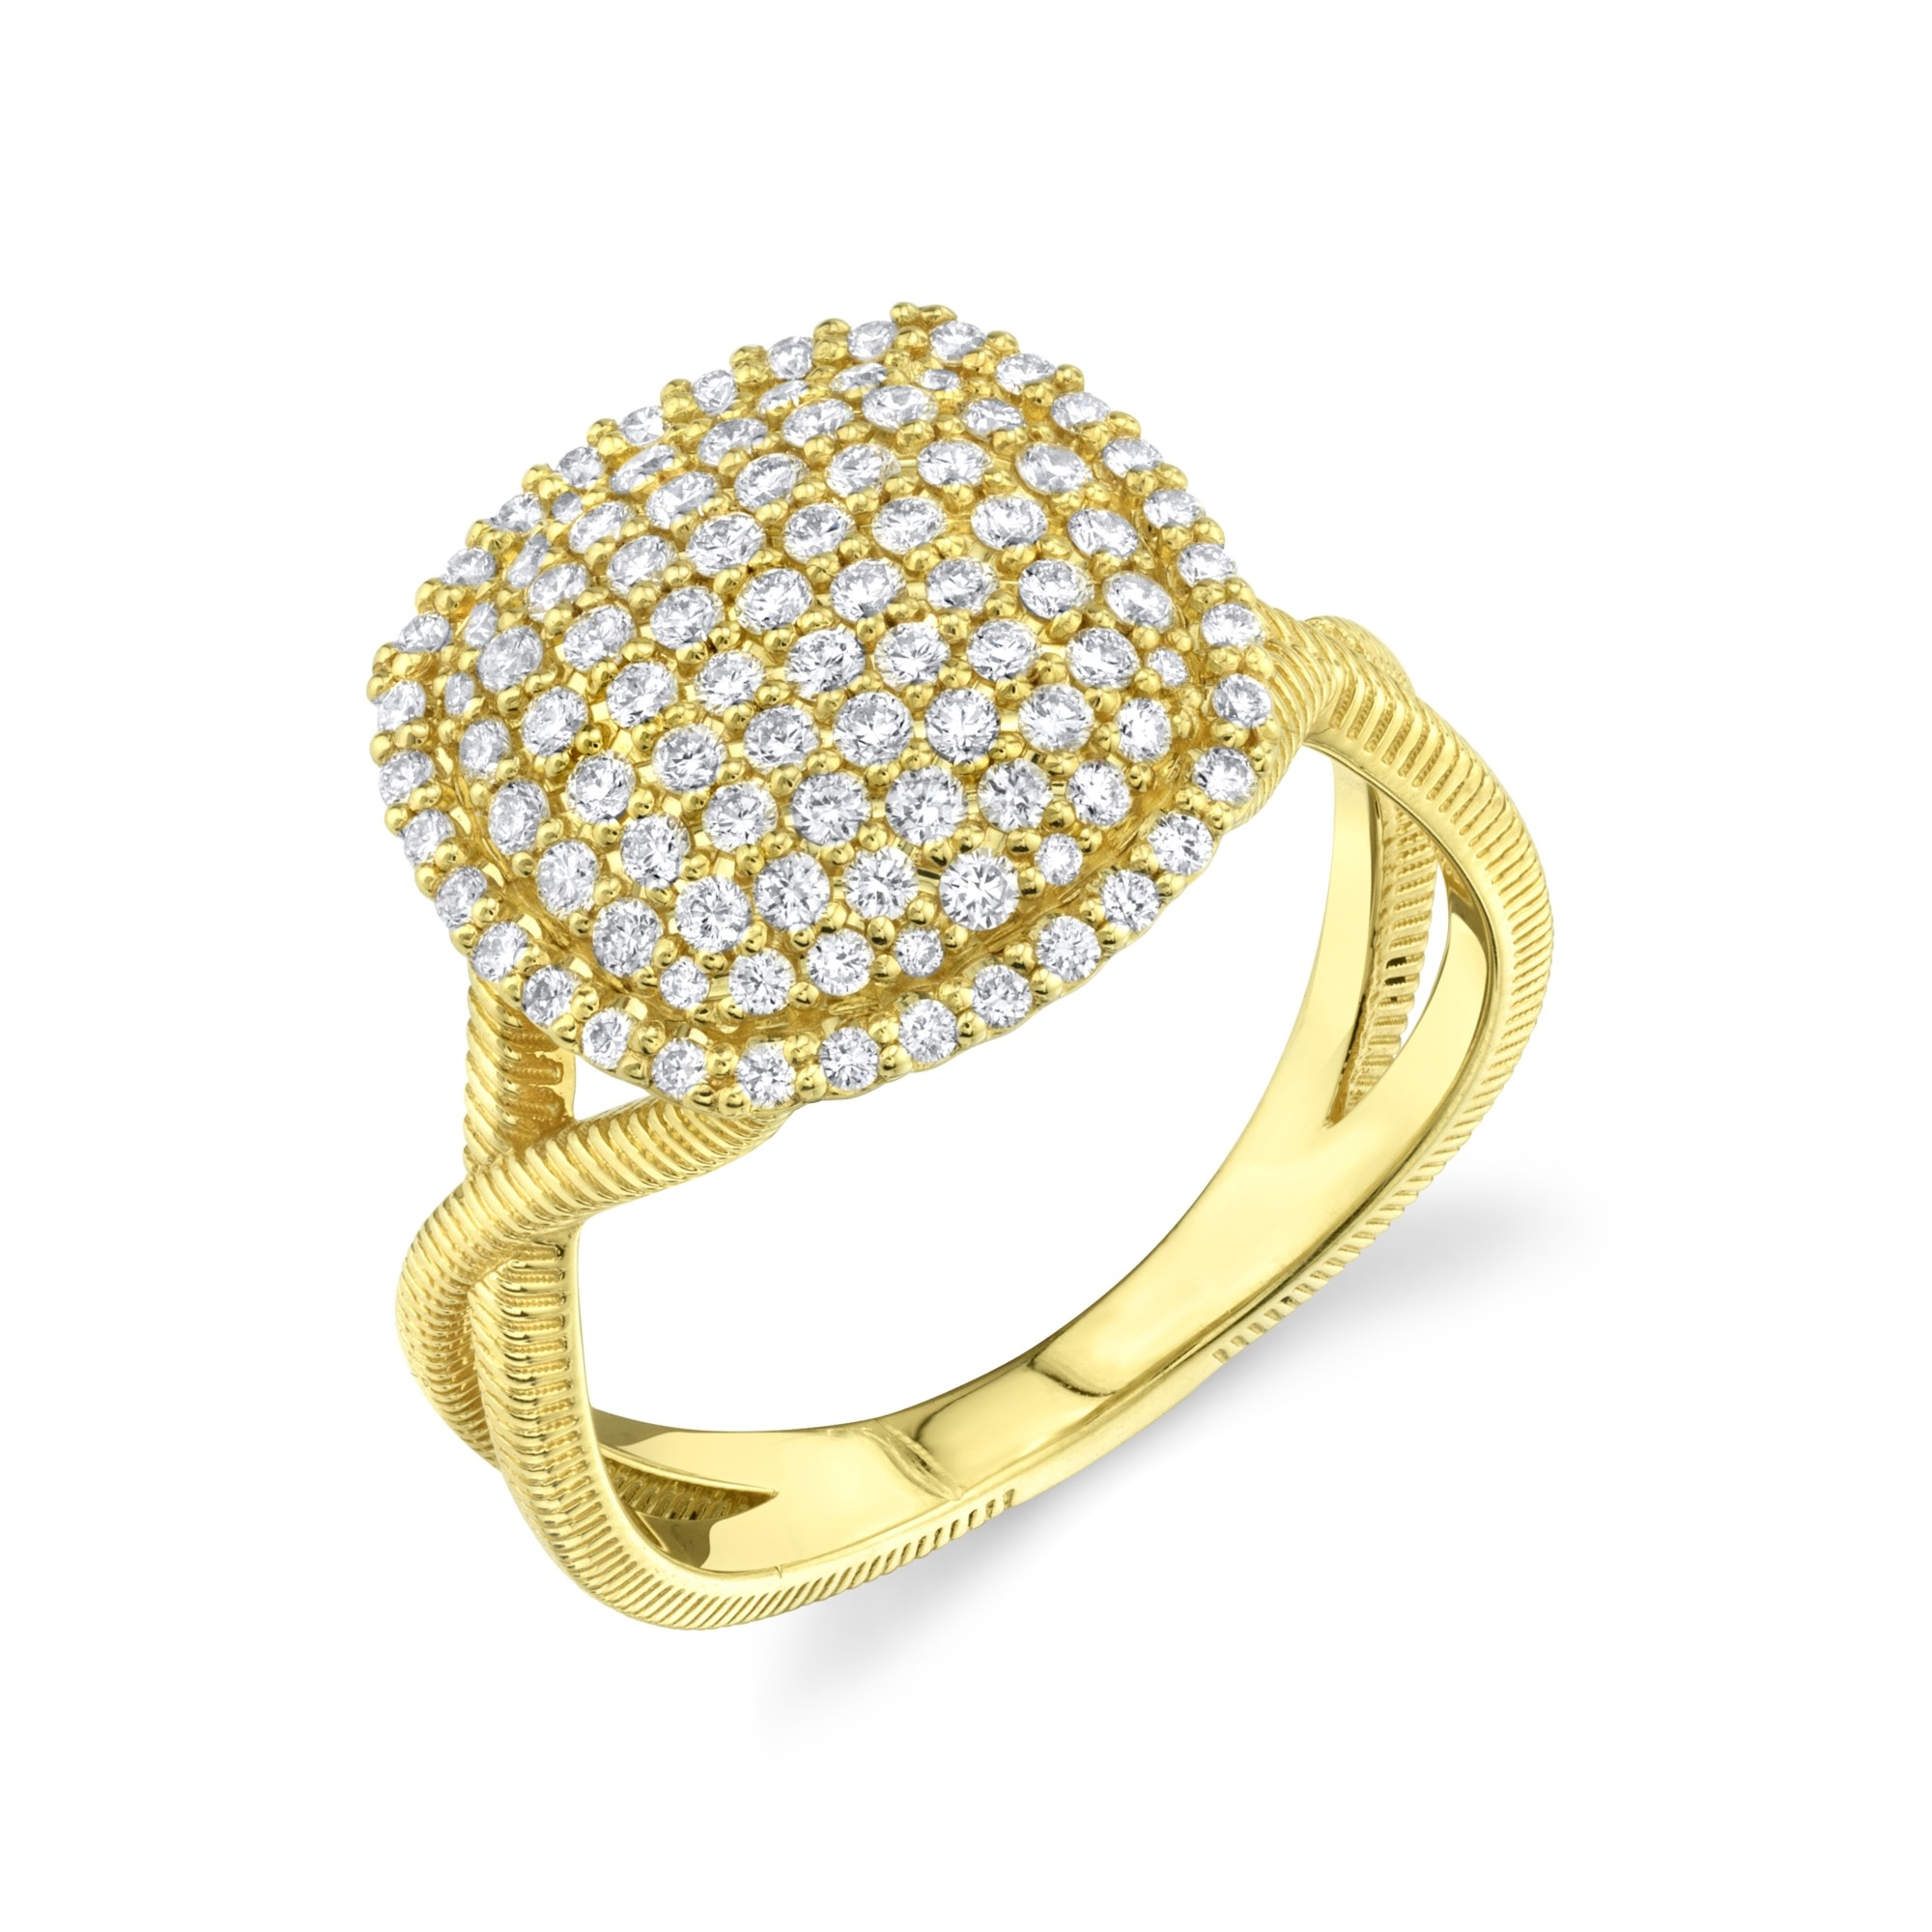 Sloane Street 18K Yellow Gold .68cts  Diamonds Gold Ring with Stones R012-WD-Y